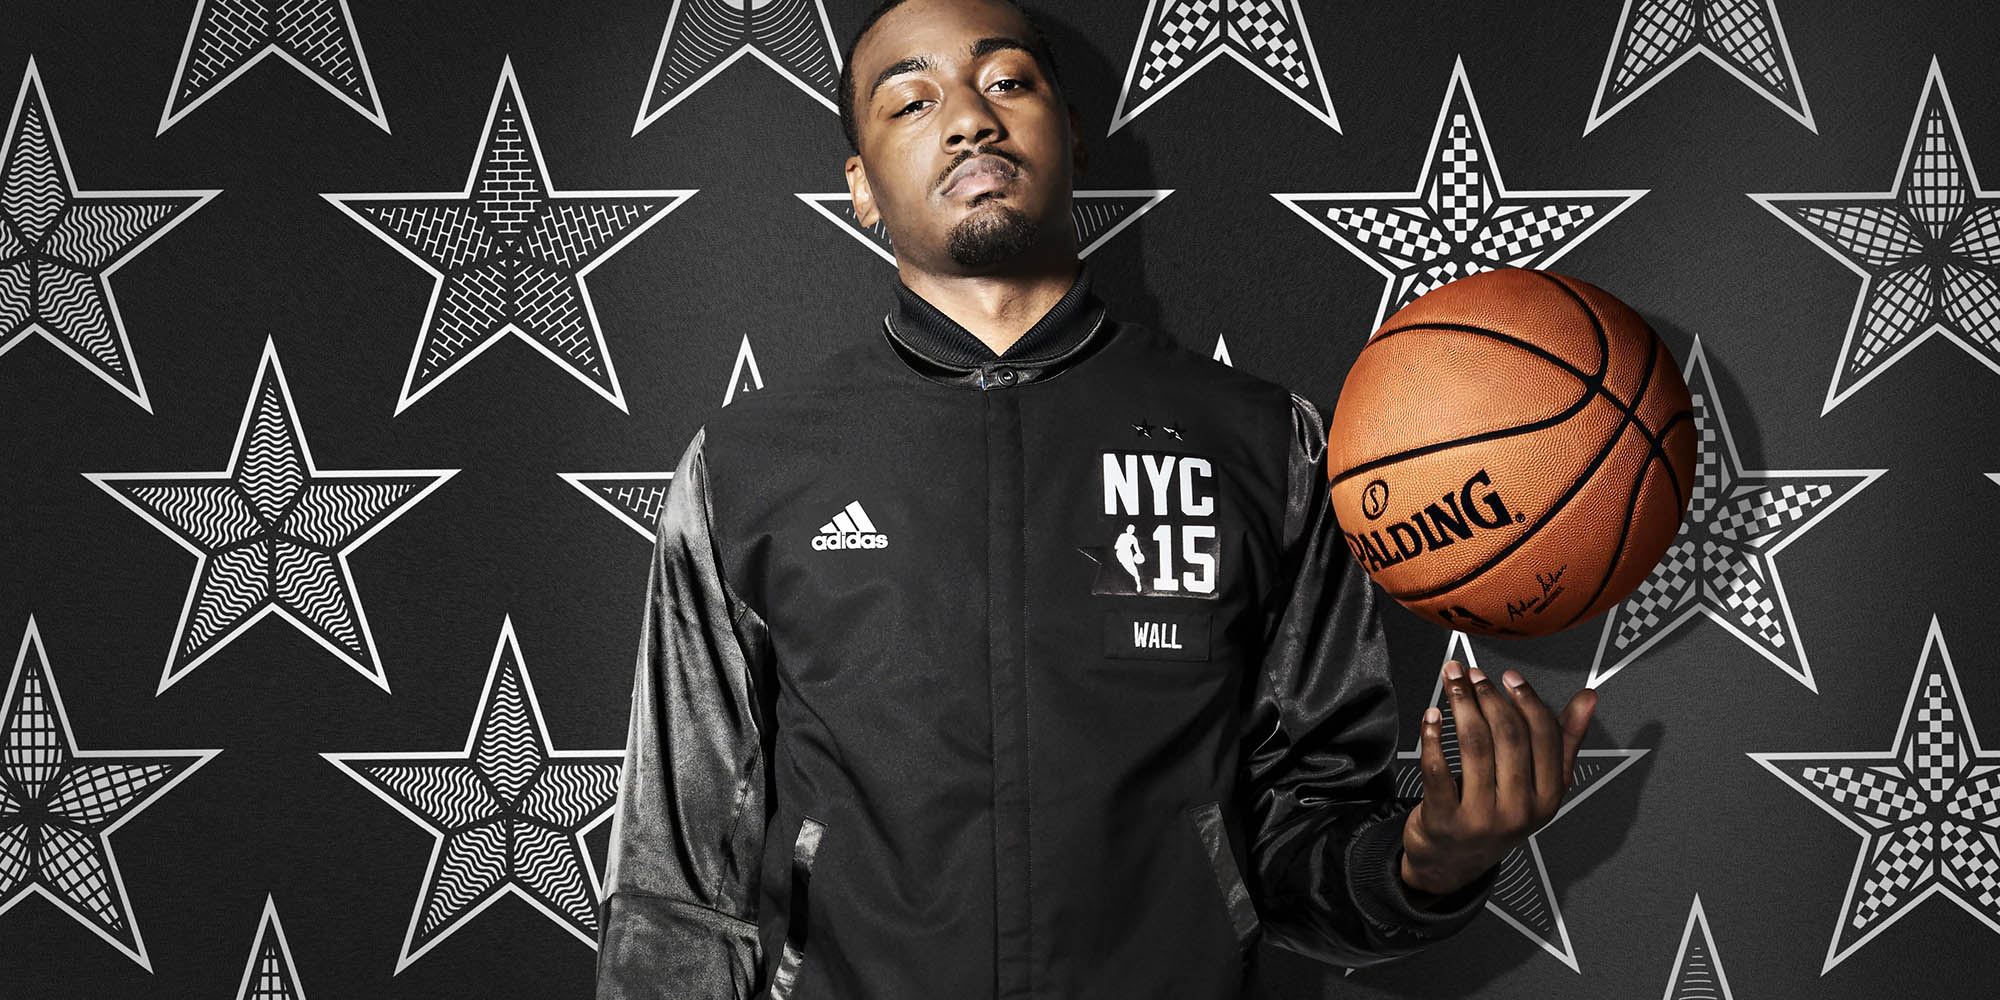 adidas John Wall NBA All-Star 2015 3 H